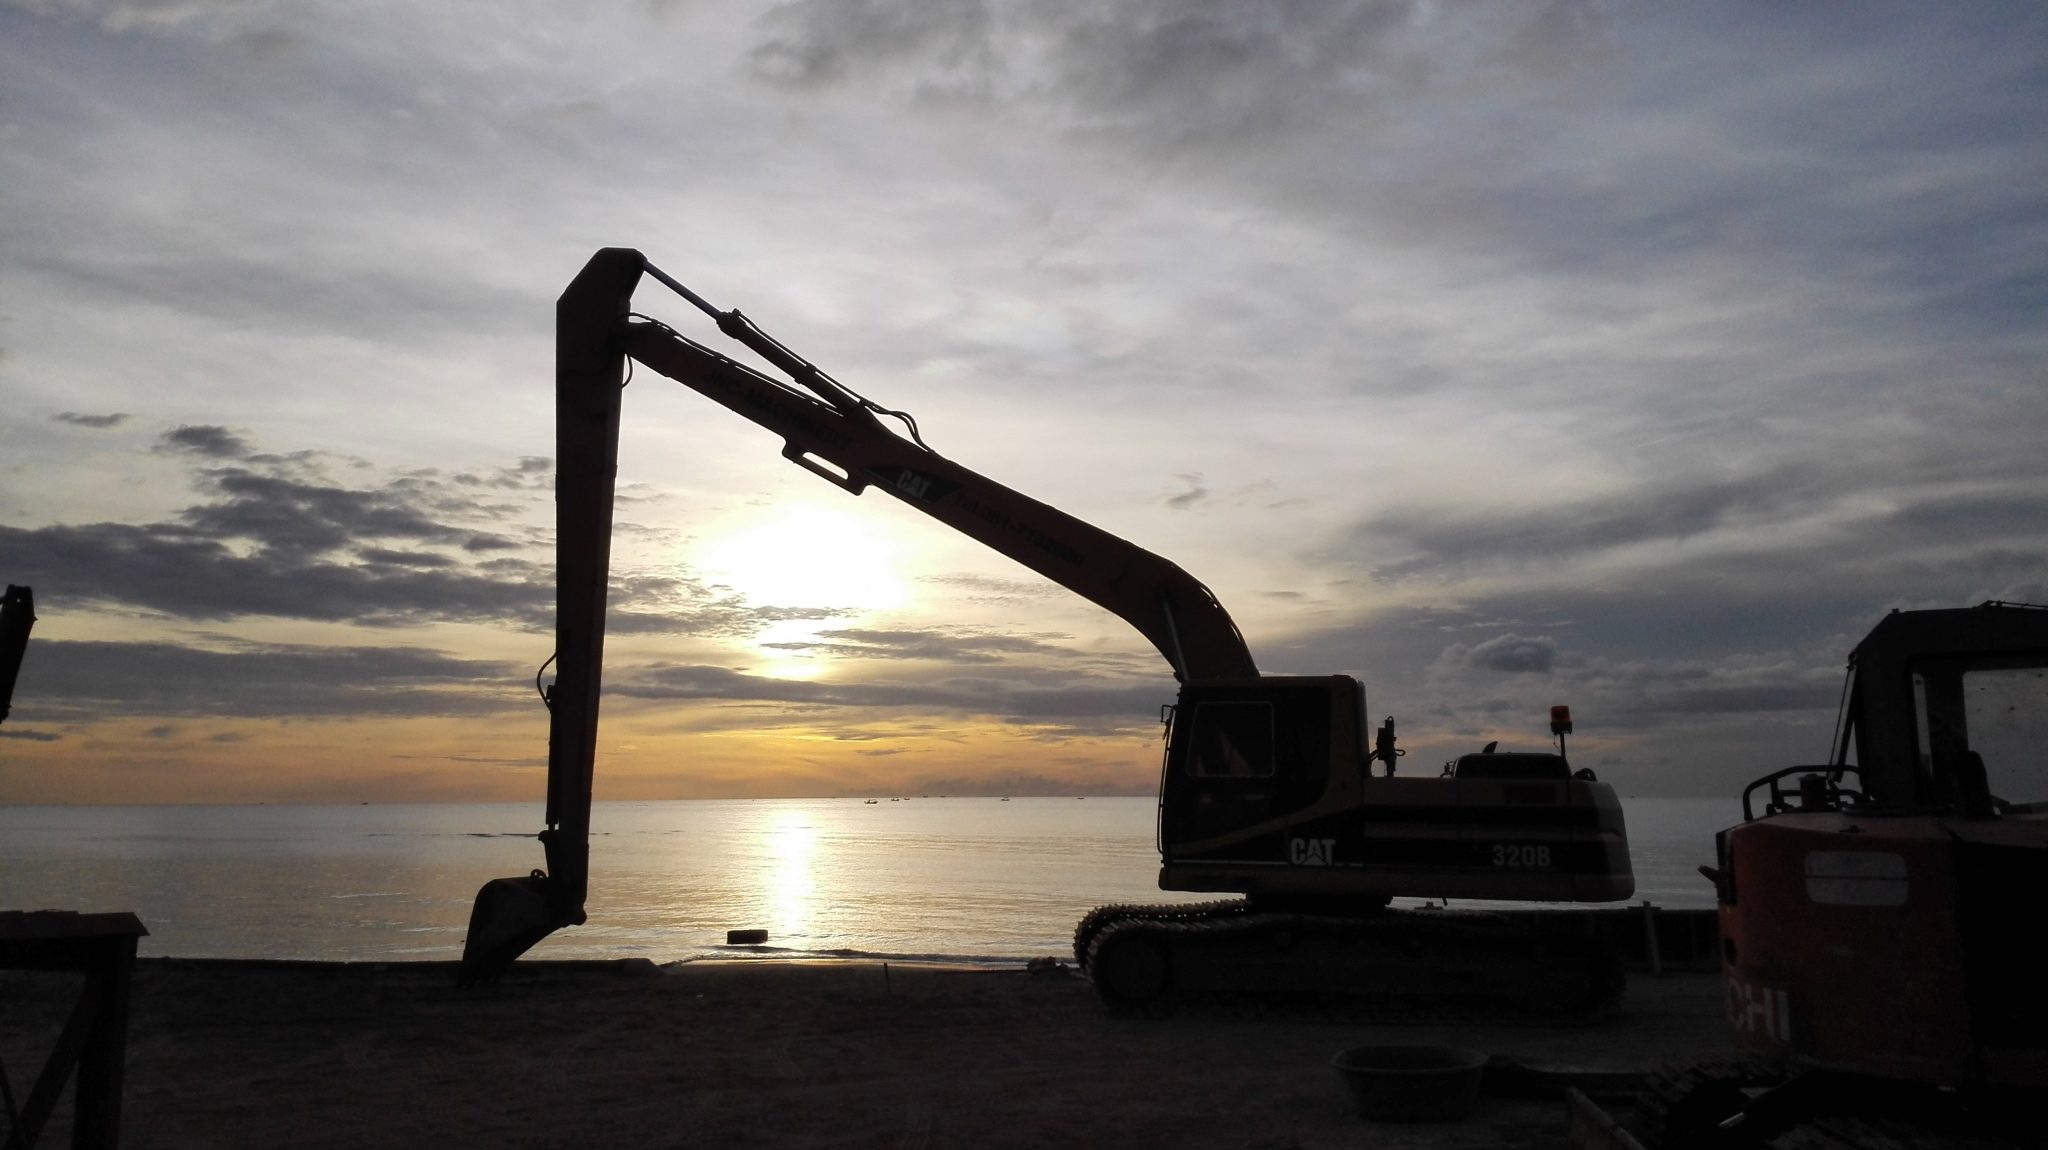 shadow of excavator over sunrise on beach